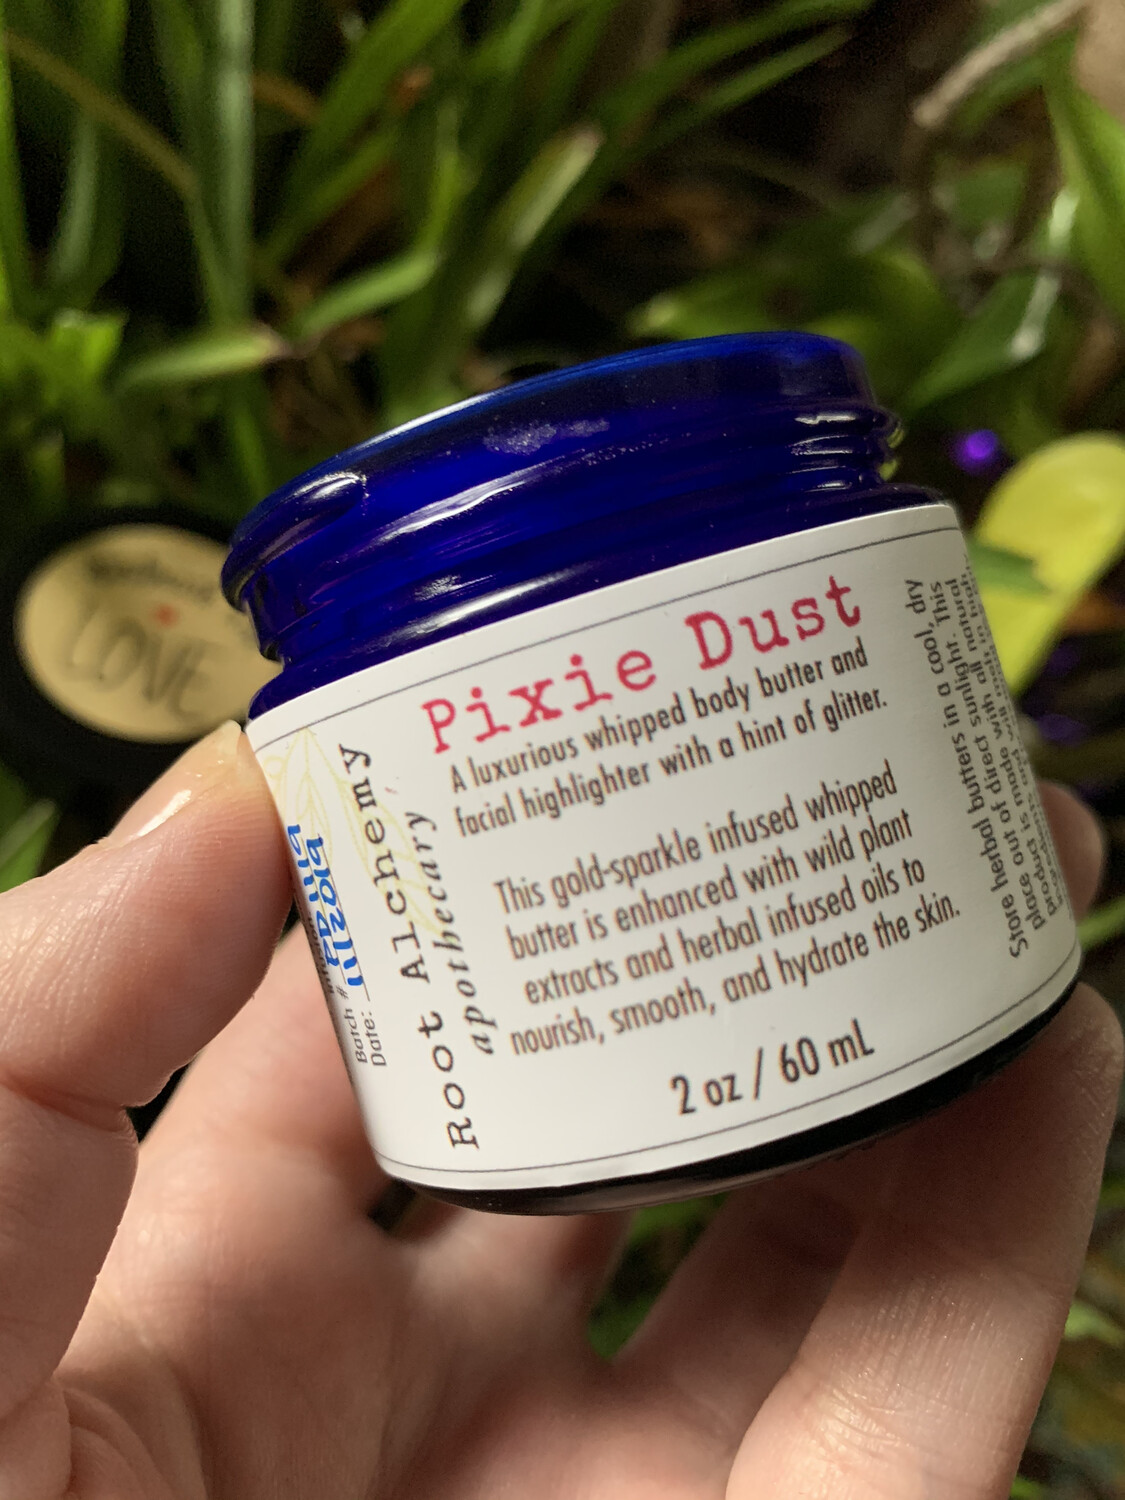 Pixie Dust: A Mica Infused Highlighter & Body Butter